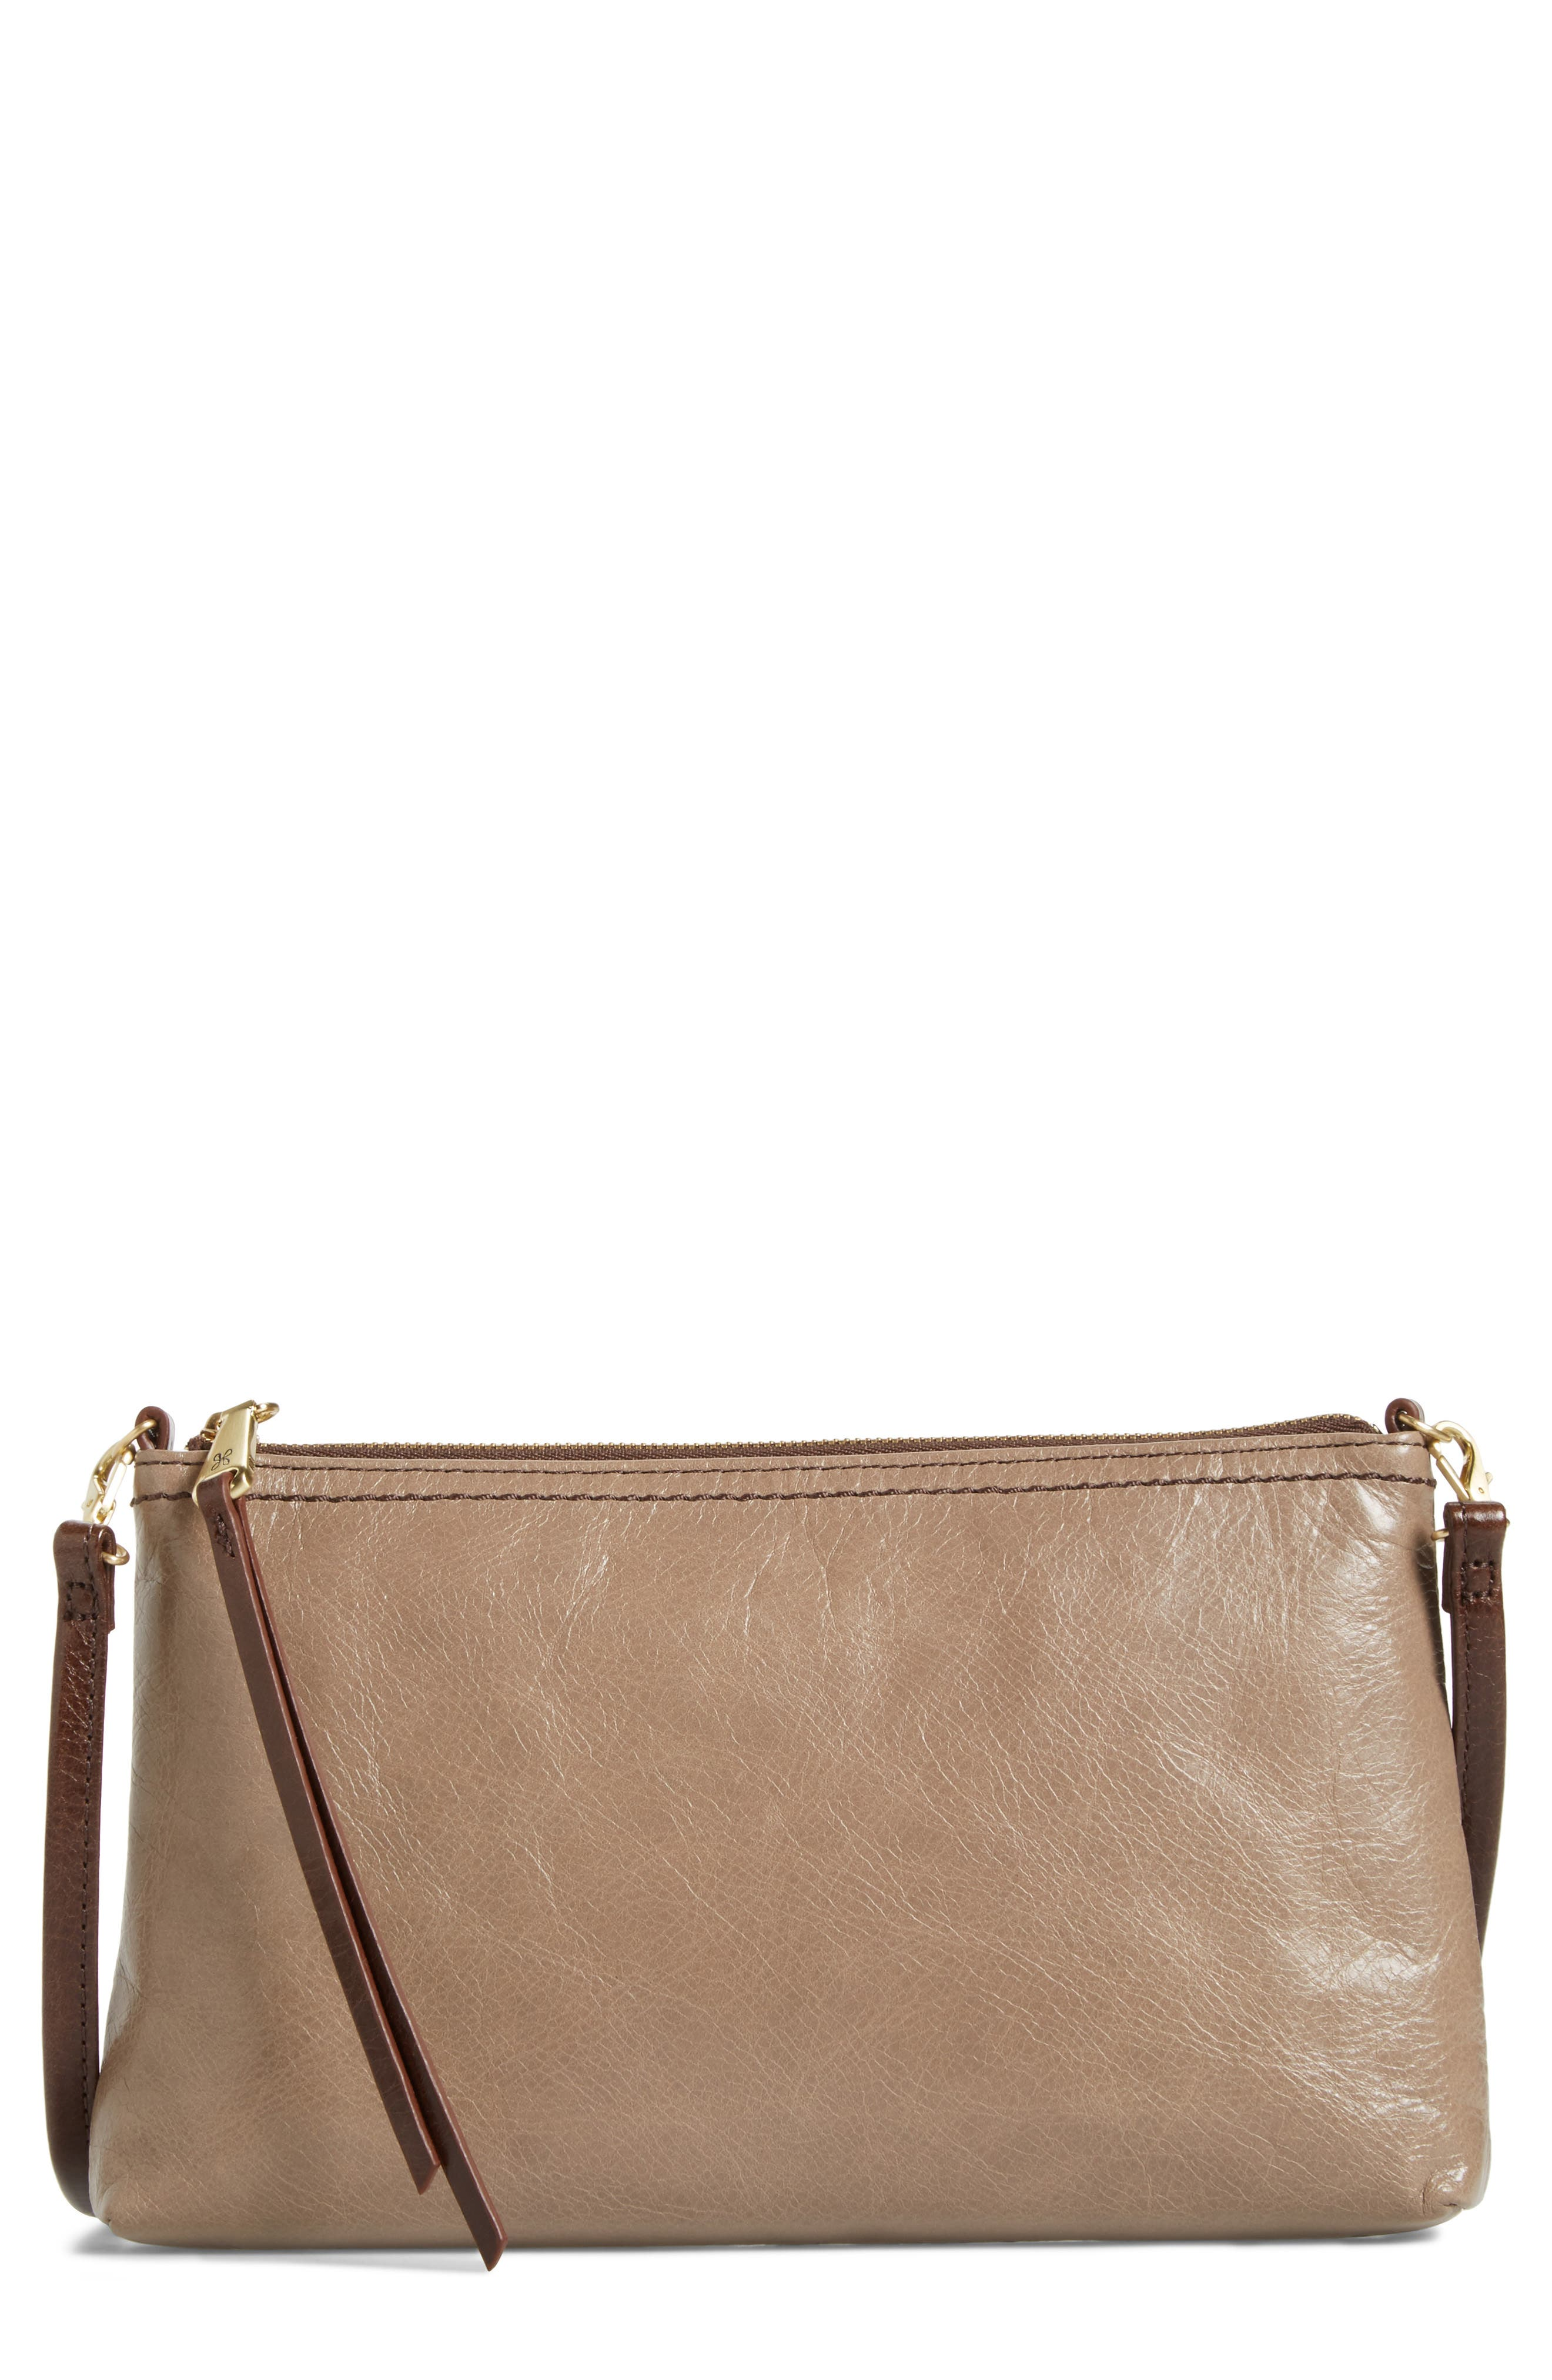 'Darcy' Leather Crossbody Bag,                             Main thumbnail 10, color,